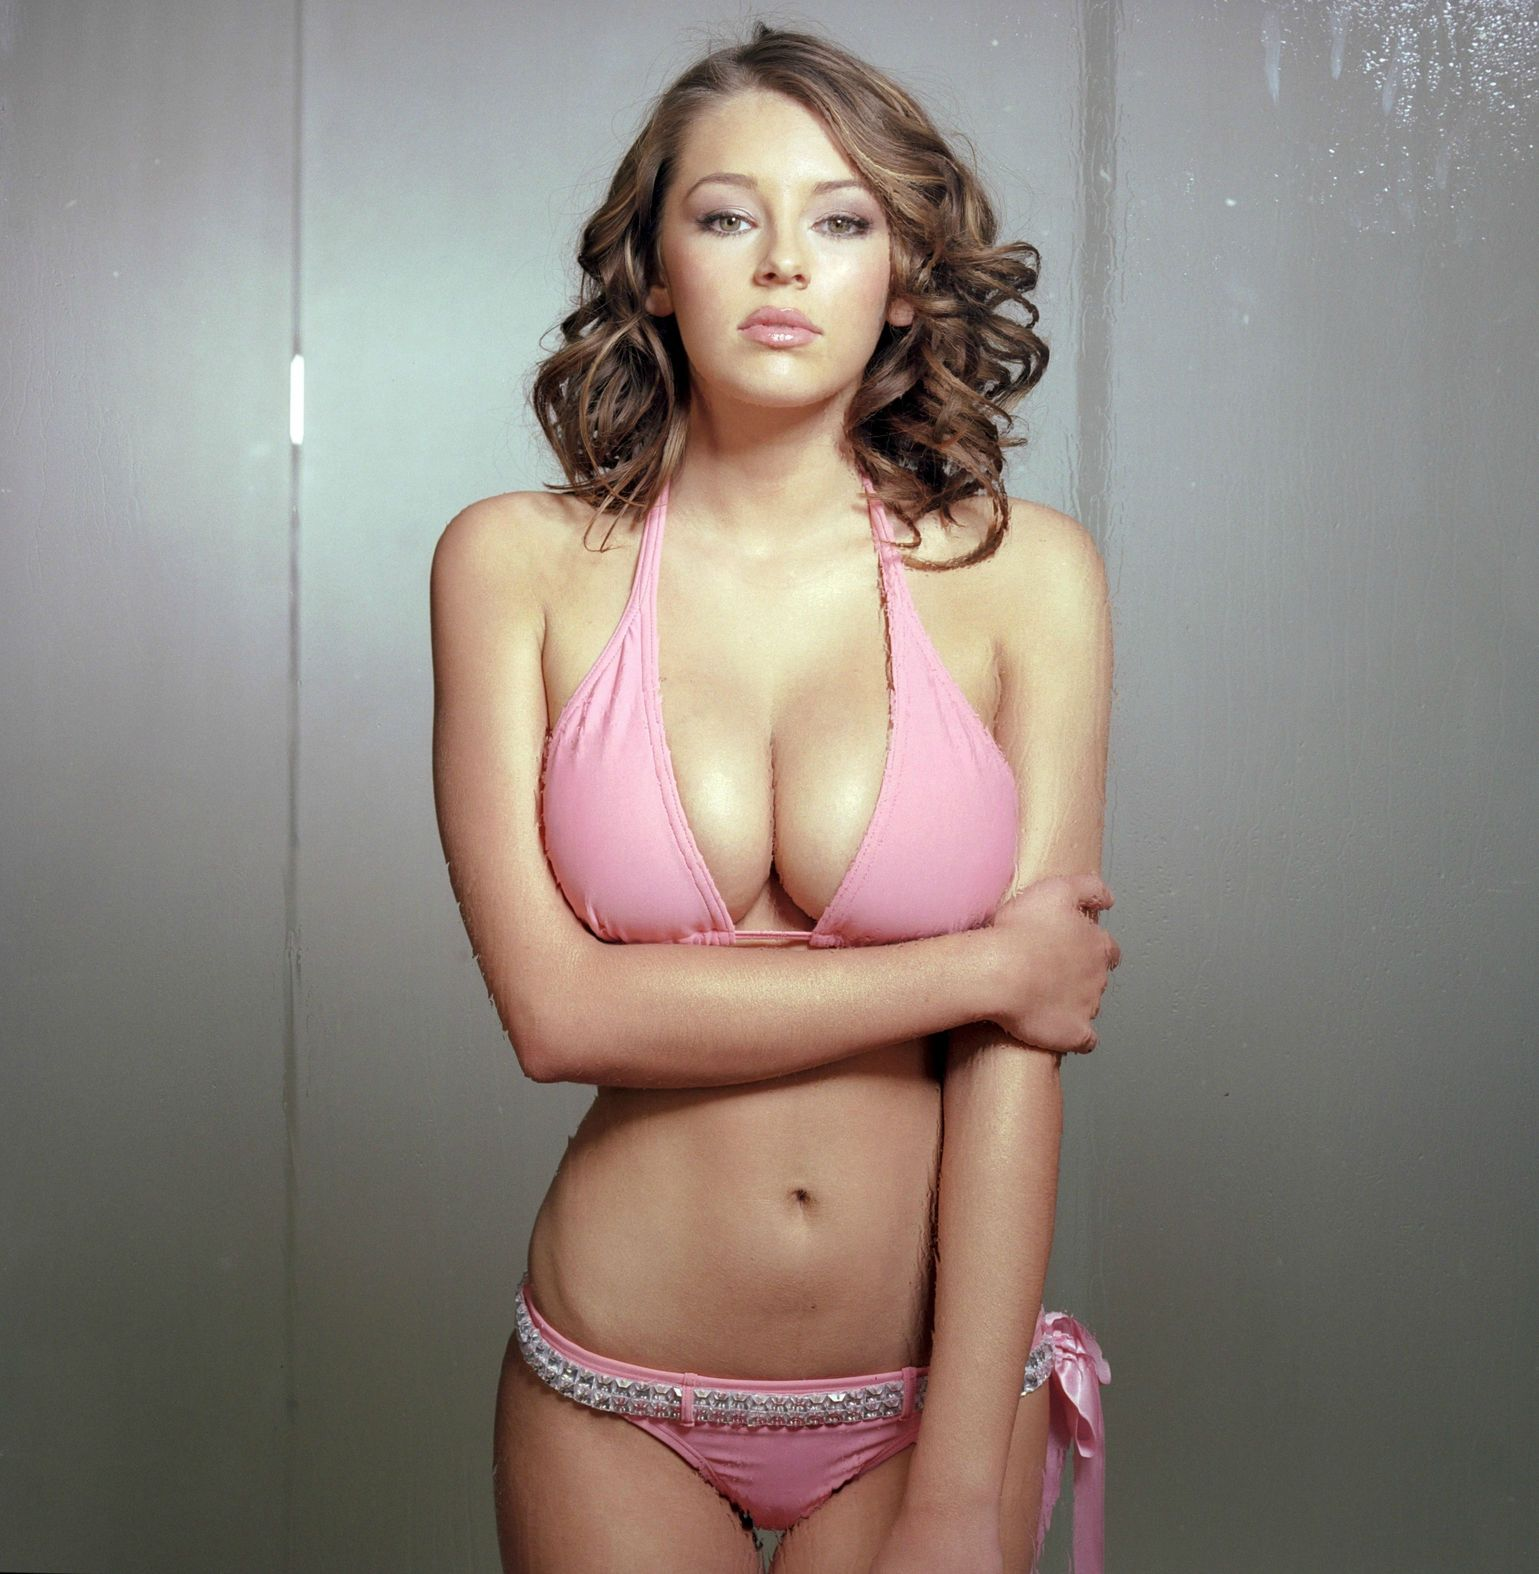 clubwear-plus-keeley-hazell-nude-photoshoot-young